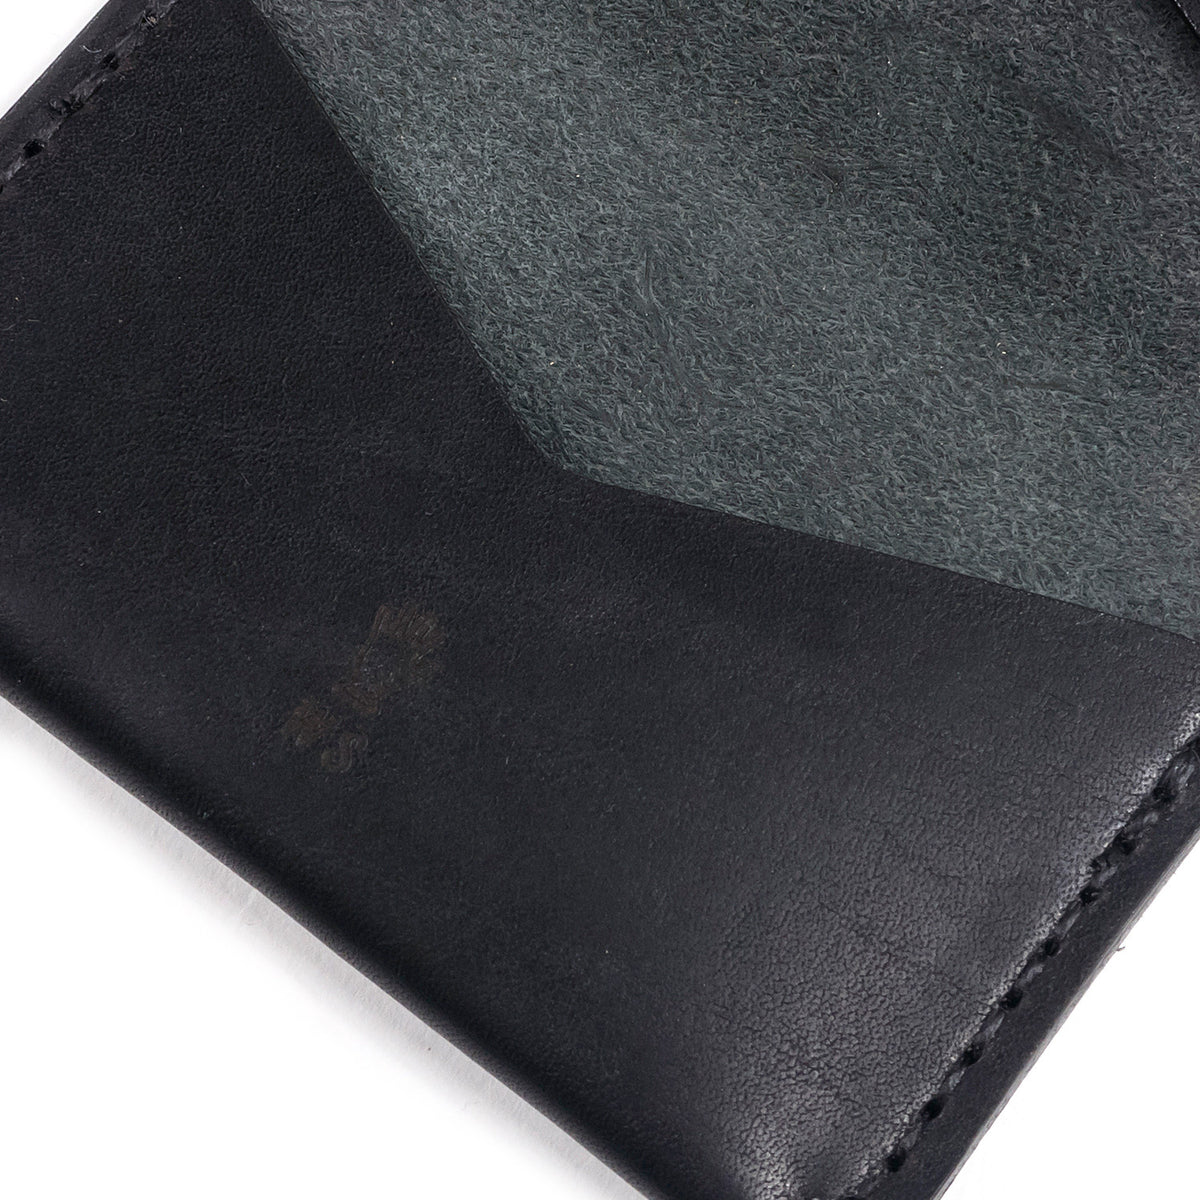 Winter Session - Triple Wallet - Black Dublin